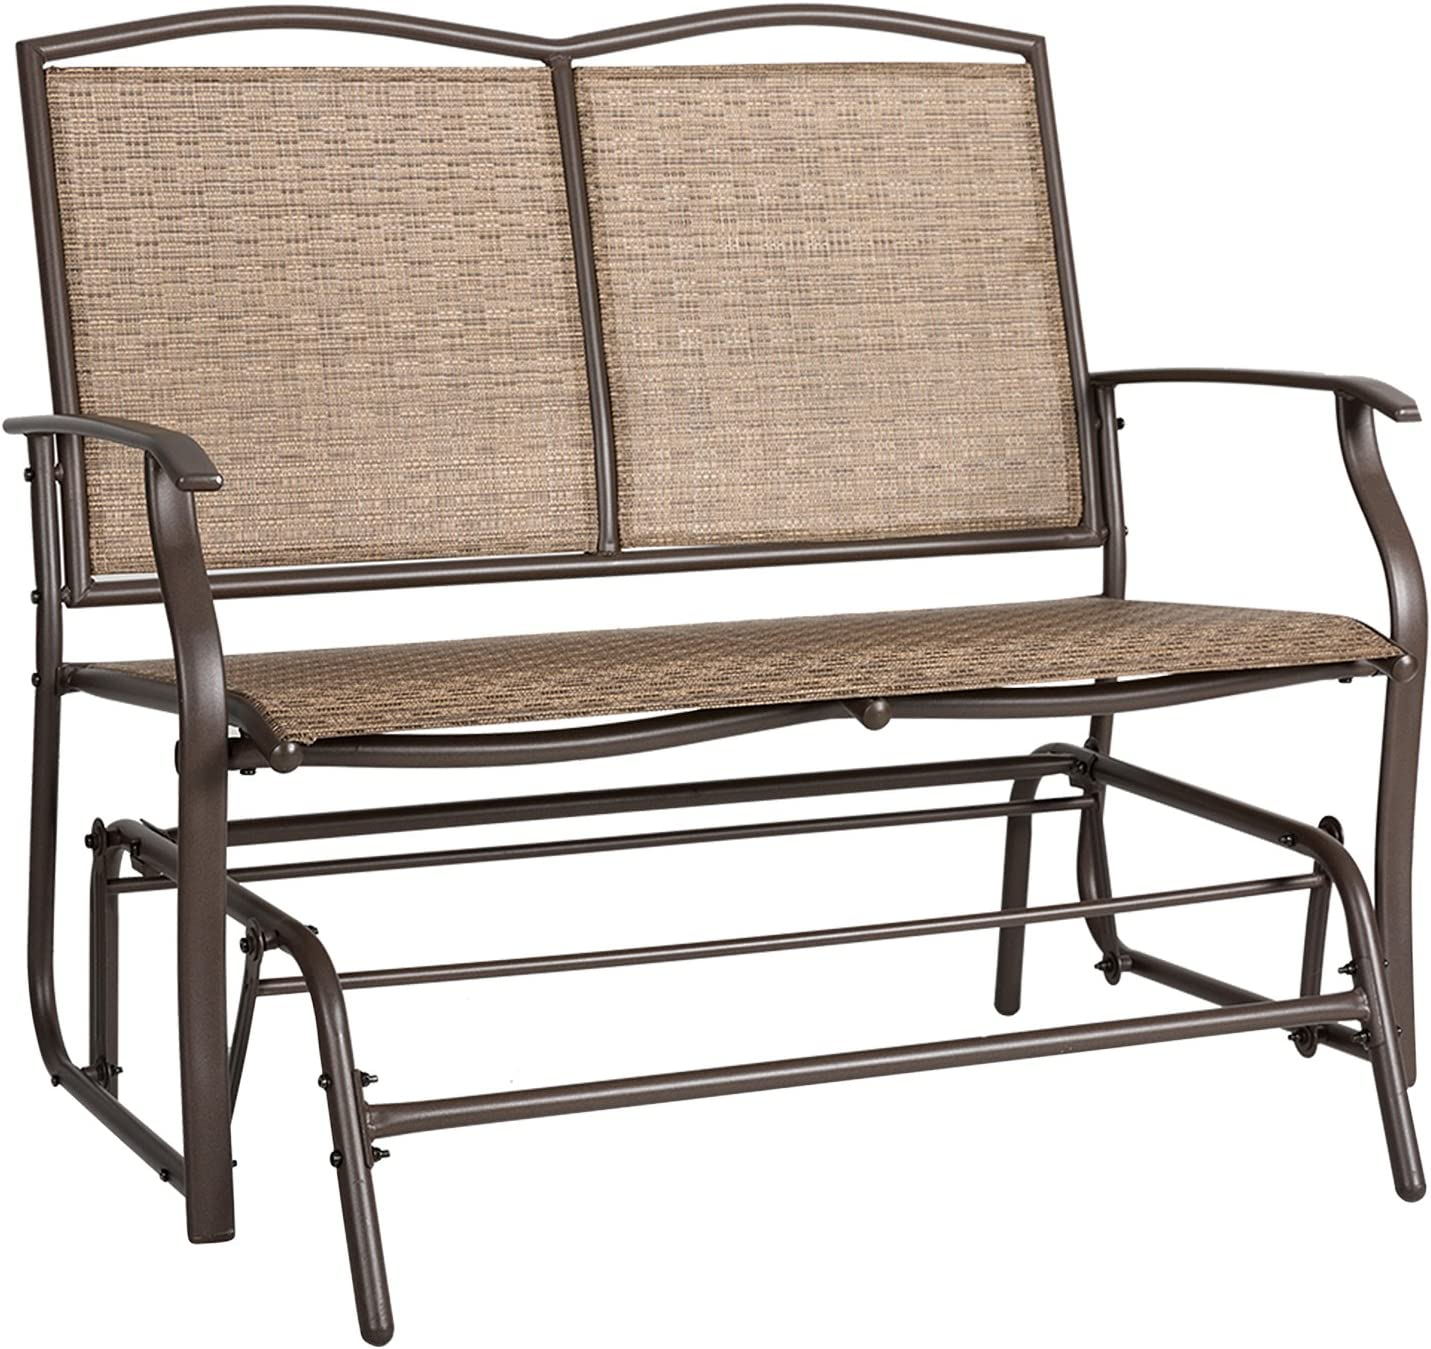 AbocoFur Patio Wicker Swing Glider Bench Bombing free shipping Sturdy Steel F Max 80% OFF Outdoor